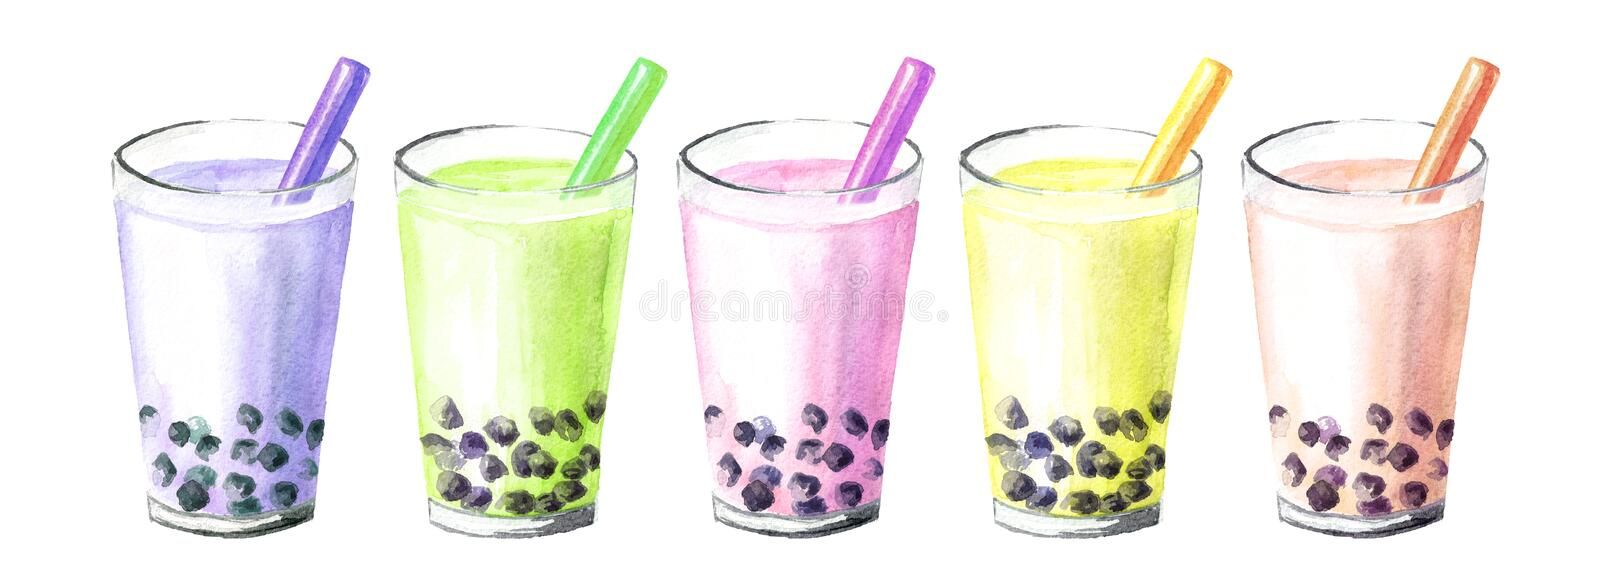 Refreshing fruit milky bubble boba tea with tapioca pearls. Food concept. Watercolor hand drawn illustration, isolated on white vector illustration